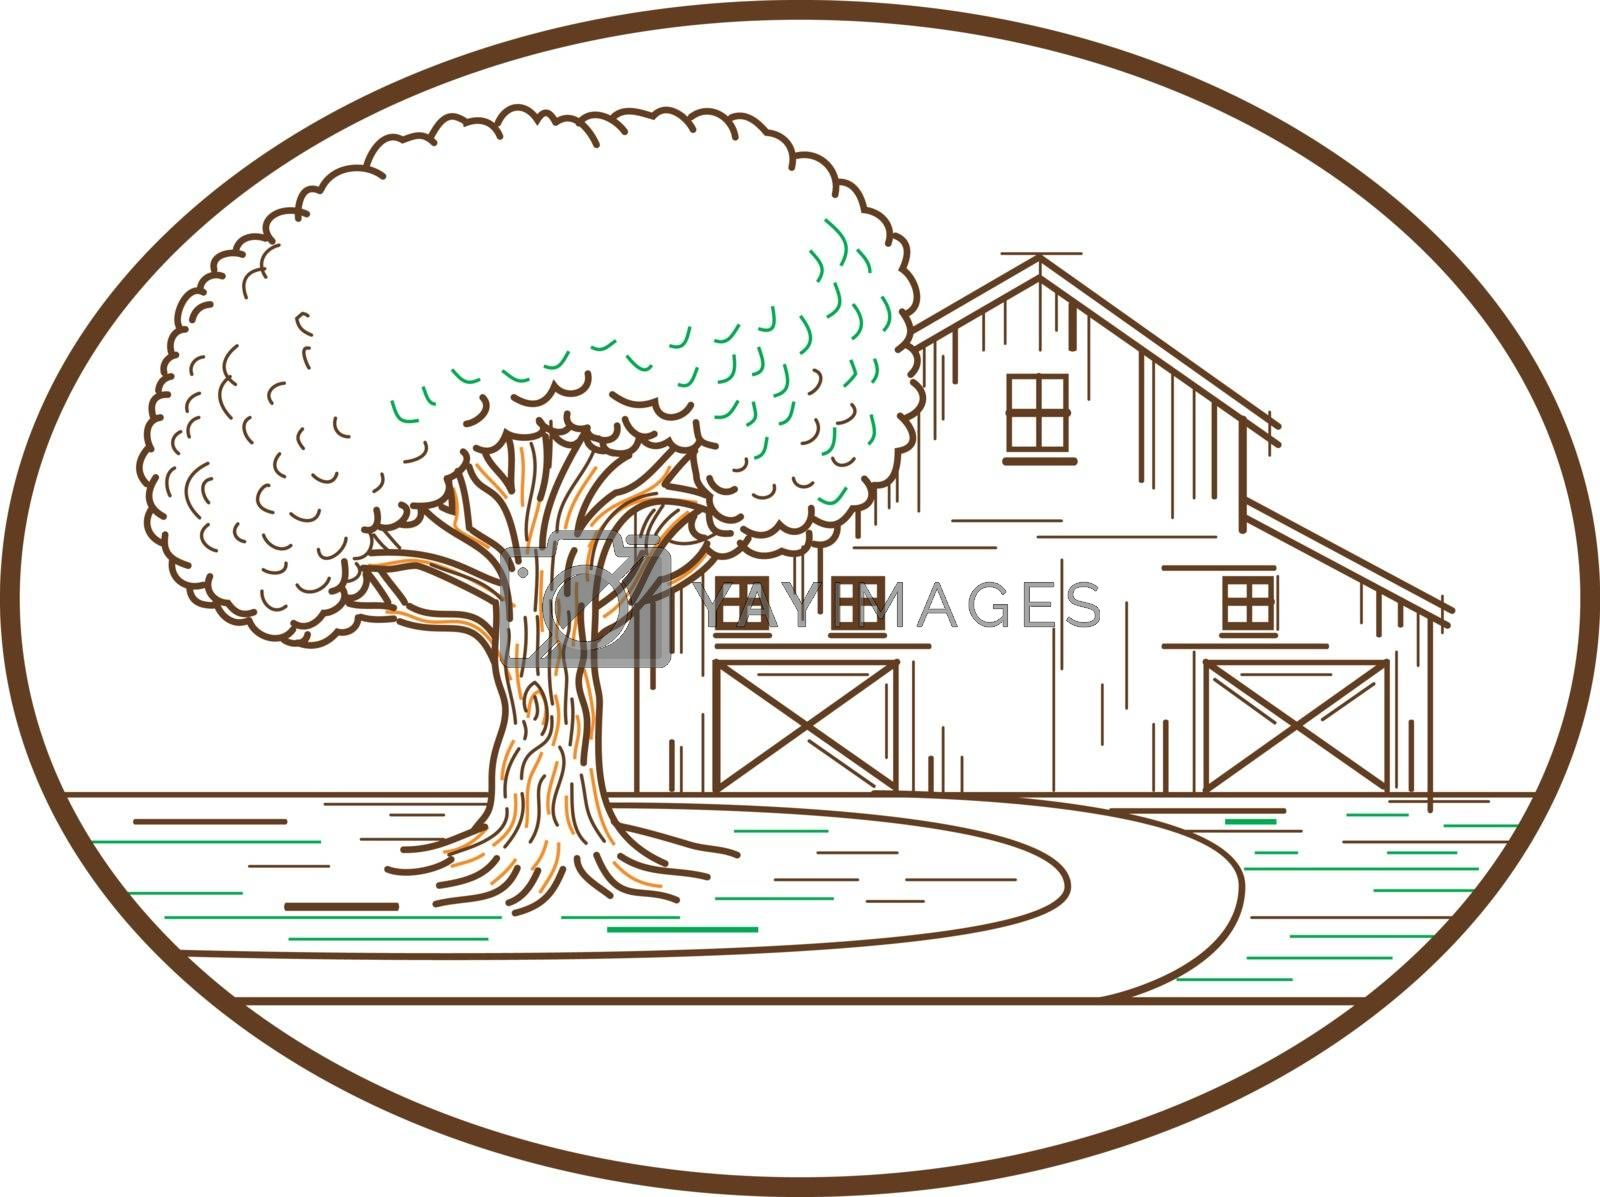 Mono line illustration of an American farm barn house with oak tree in front set inside oval shape done in monoline style.